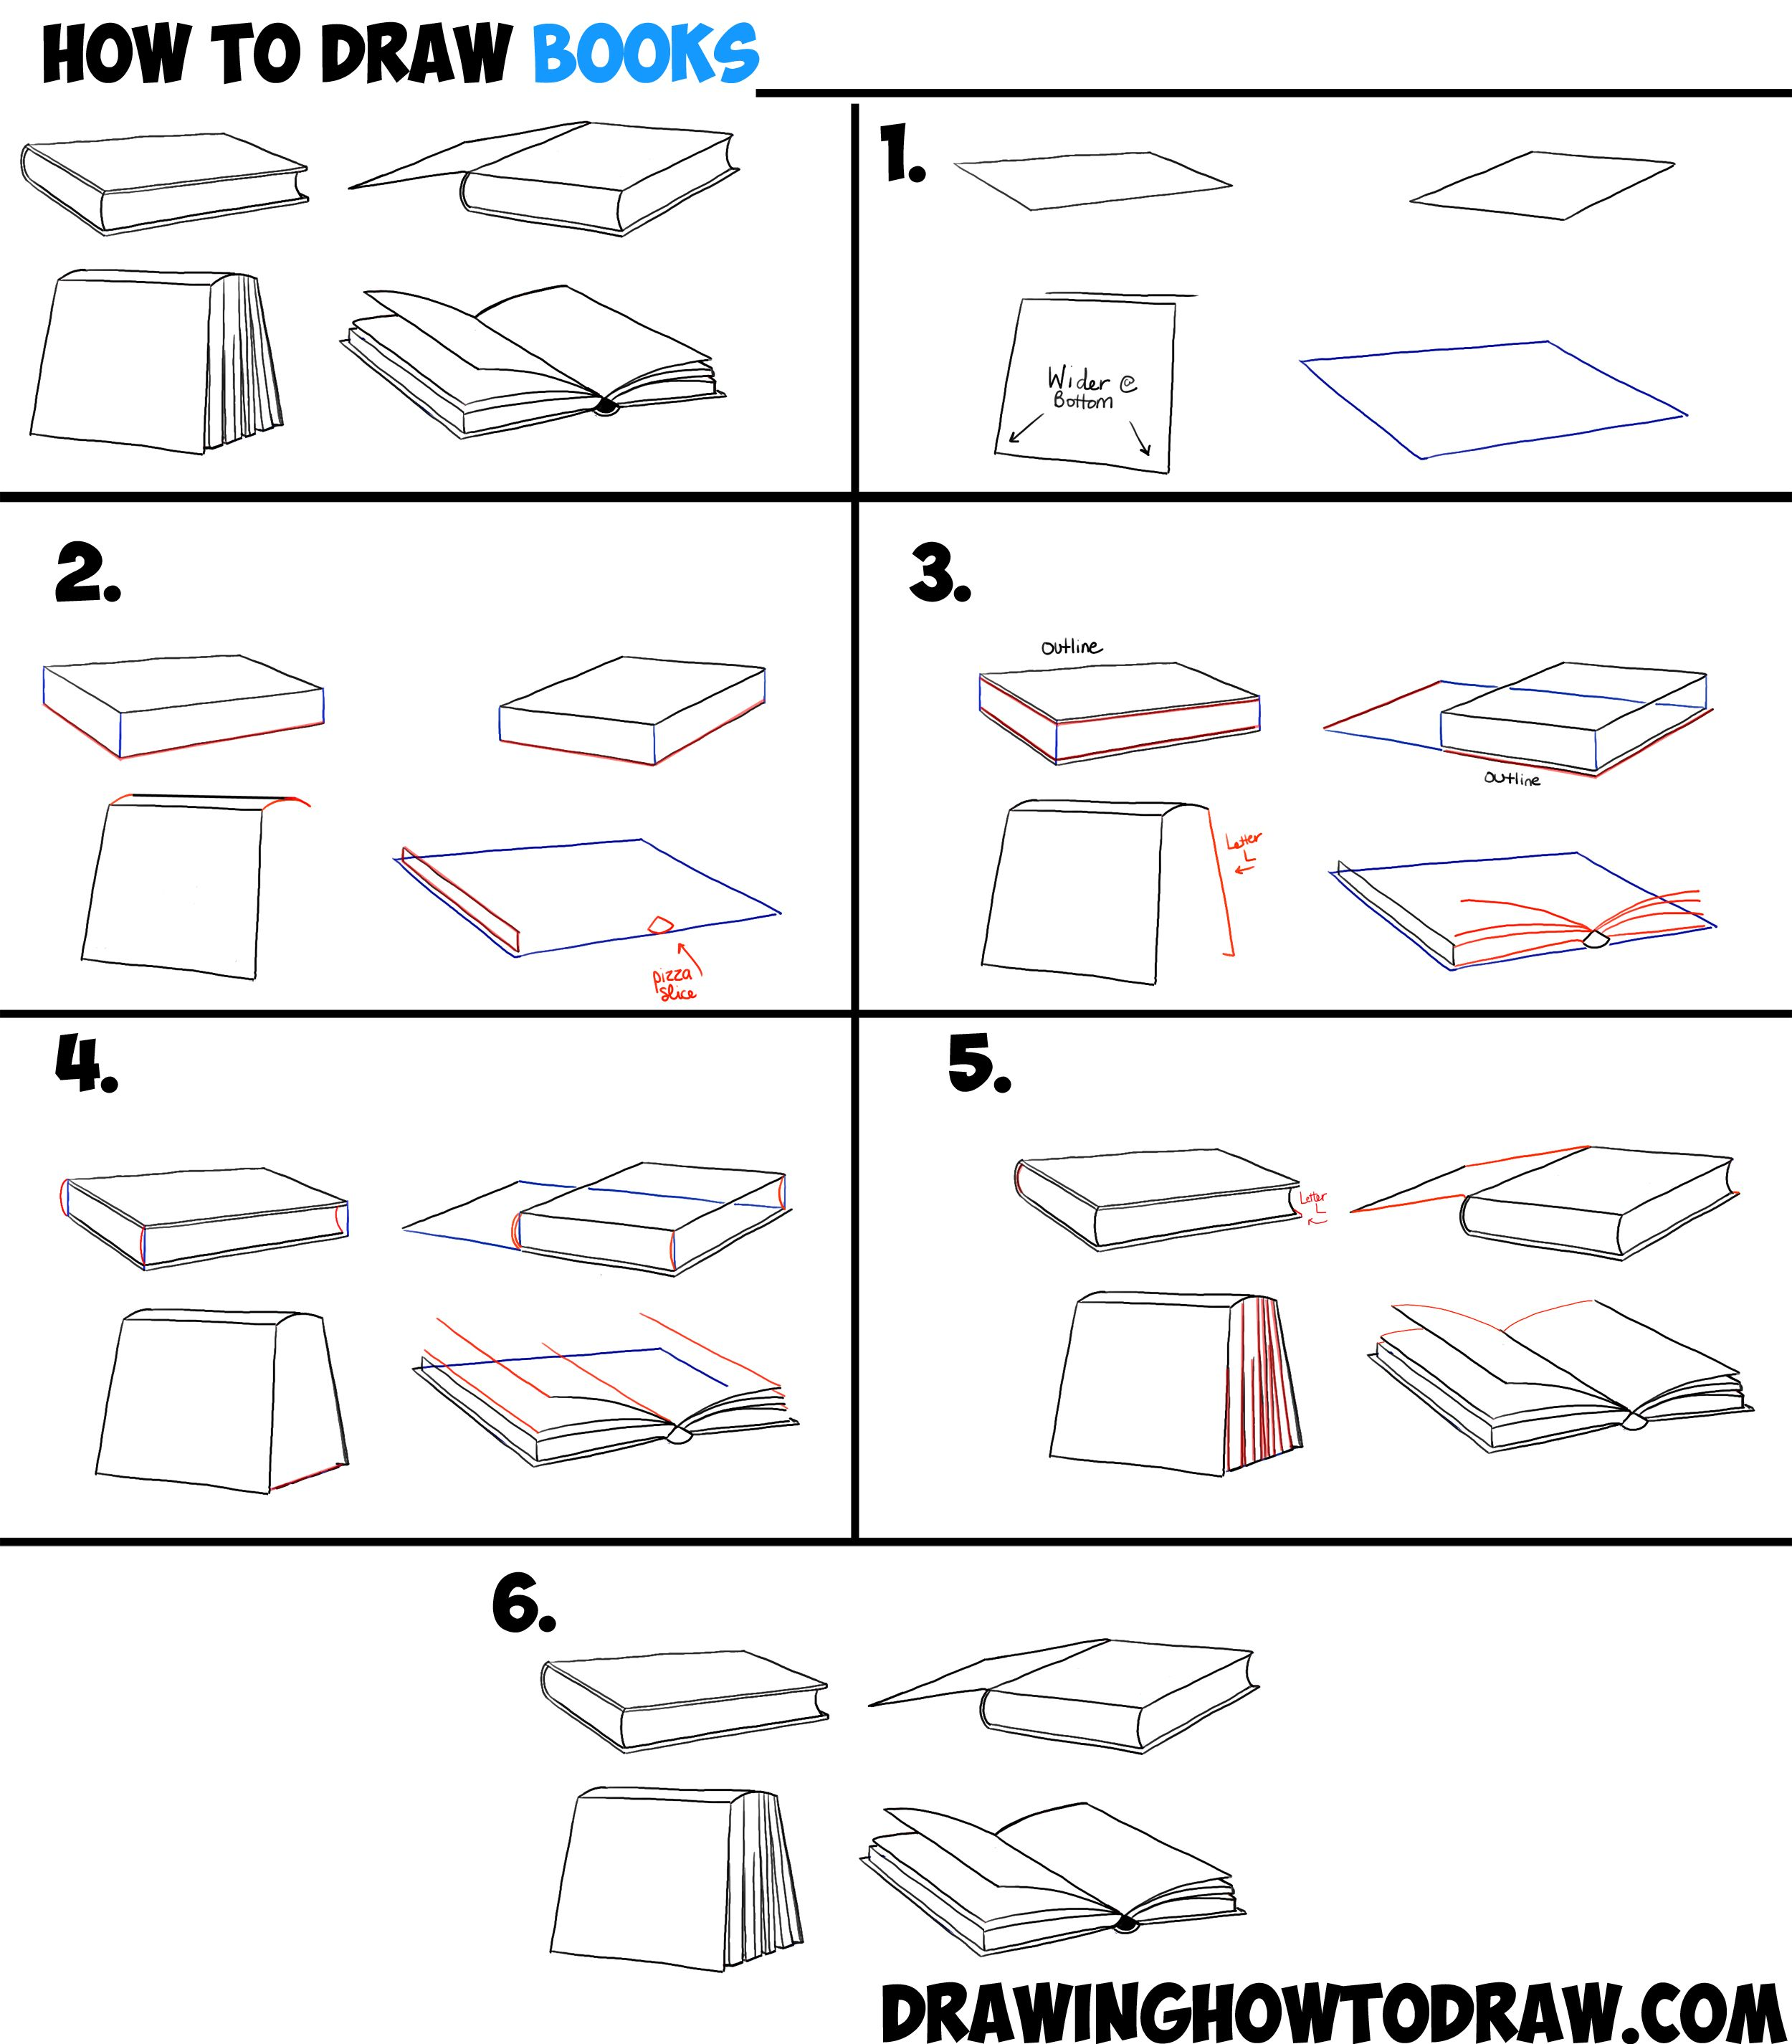 worksheet Drawing Angles how to draw books in 4 different angles perspectives open closed etc